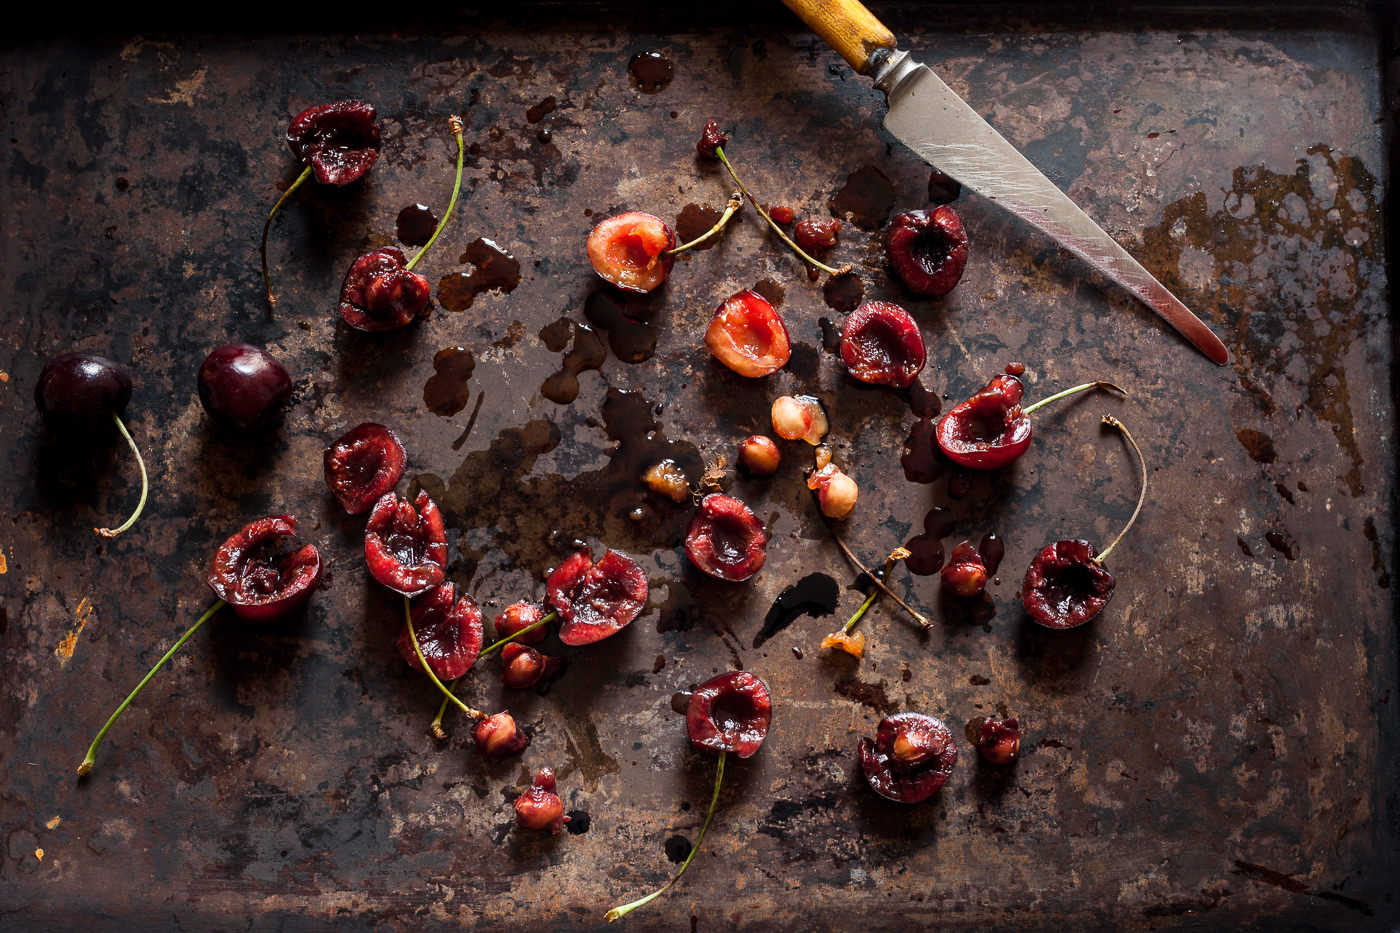 Sliced cherries on a rustic baking sheet, the knife can be seen to have cherry juice along it and juices are on the baking sheet